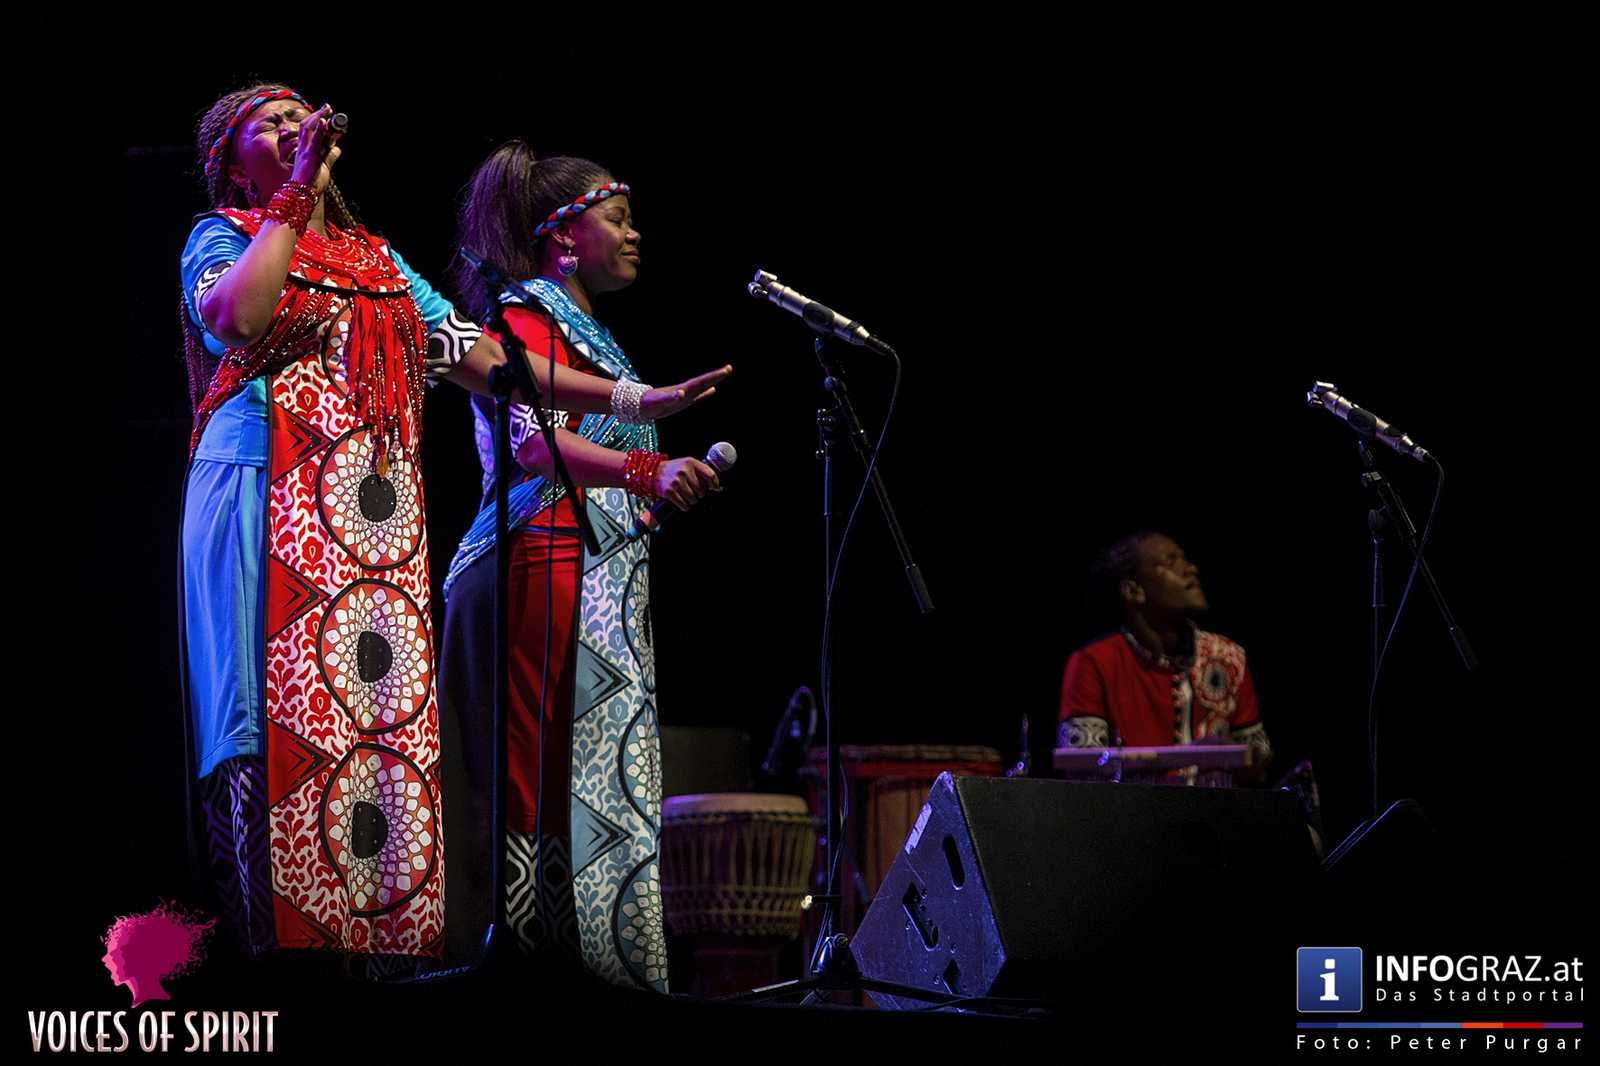 soweto gospel choir internationales chorfestival statdthalle graz voices of spirit eroeffnung festivals 2016 095